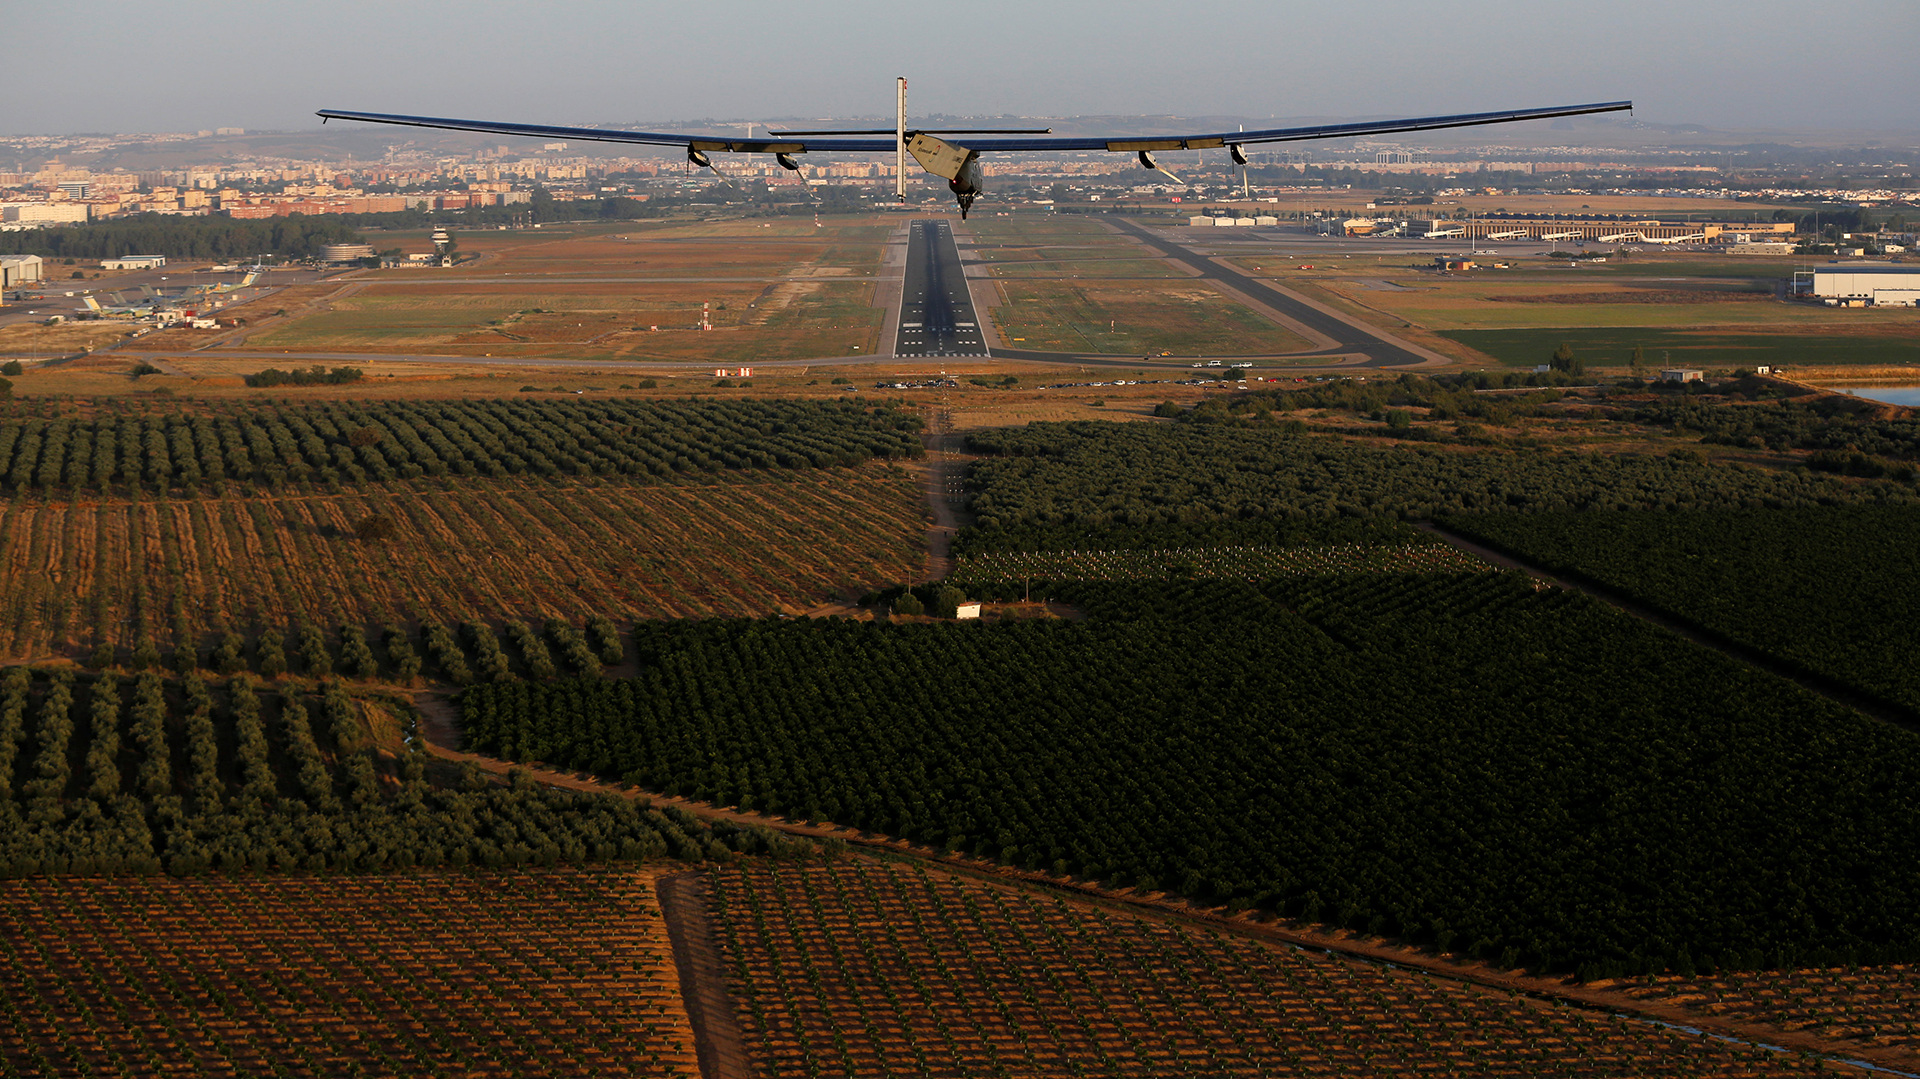 The solar-powered plane Solar Impulse 2, piloted by Swiss aviator Bertrand Piccard, is pictured before landing at San Pablo airport in Seville, southern Spain June 23, 2016. REUTERS/Marcelo del Pozo